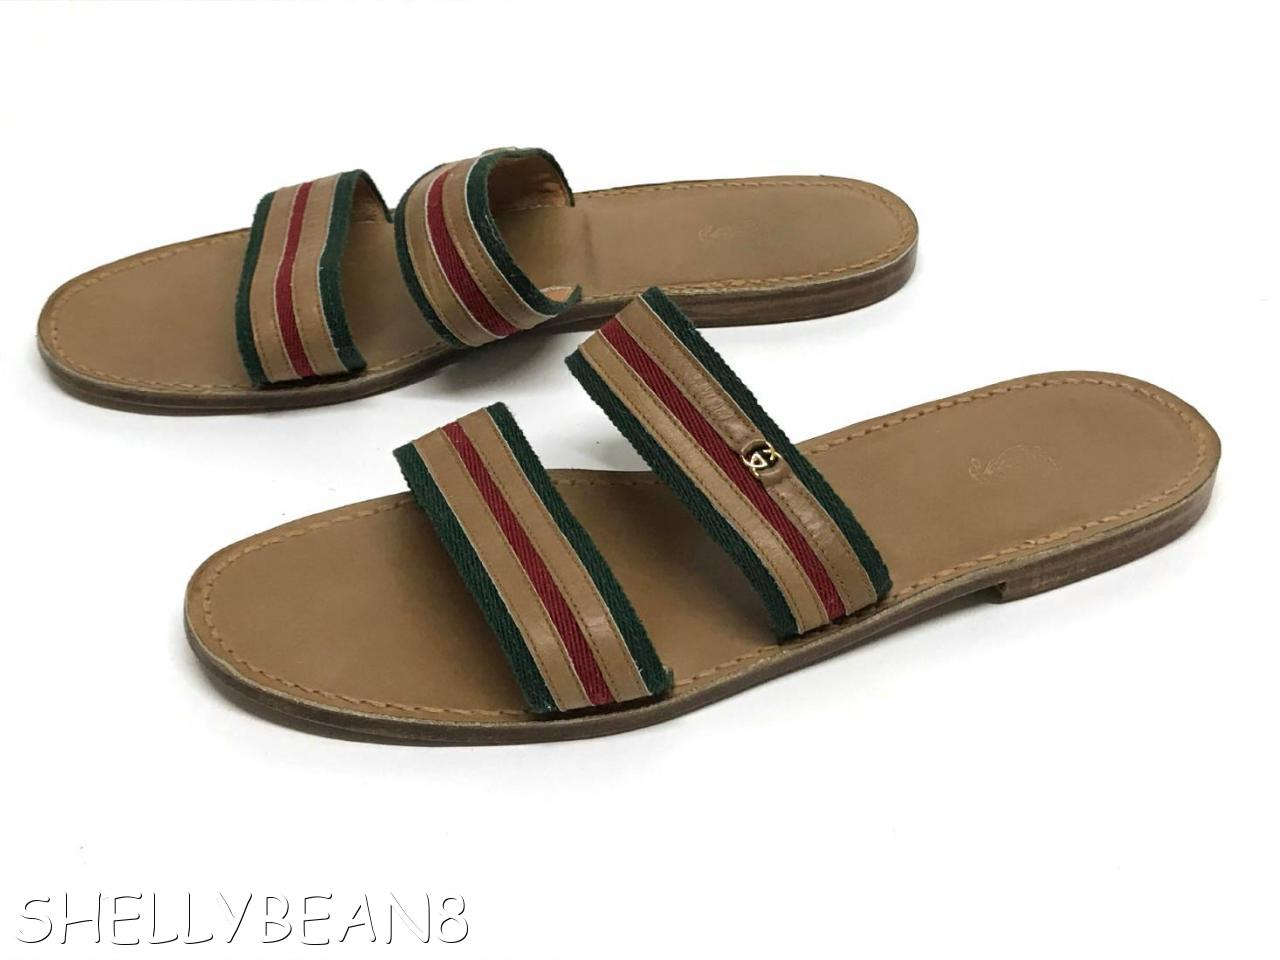 783ce2253a3 GUCCI GG LOGO Flats SANDALS Slides Shoes RED GREEN STRIPE VTG 44 ...